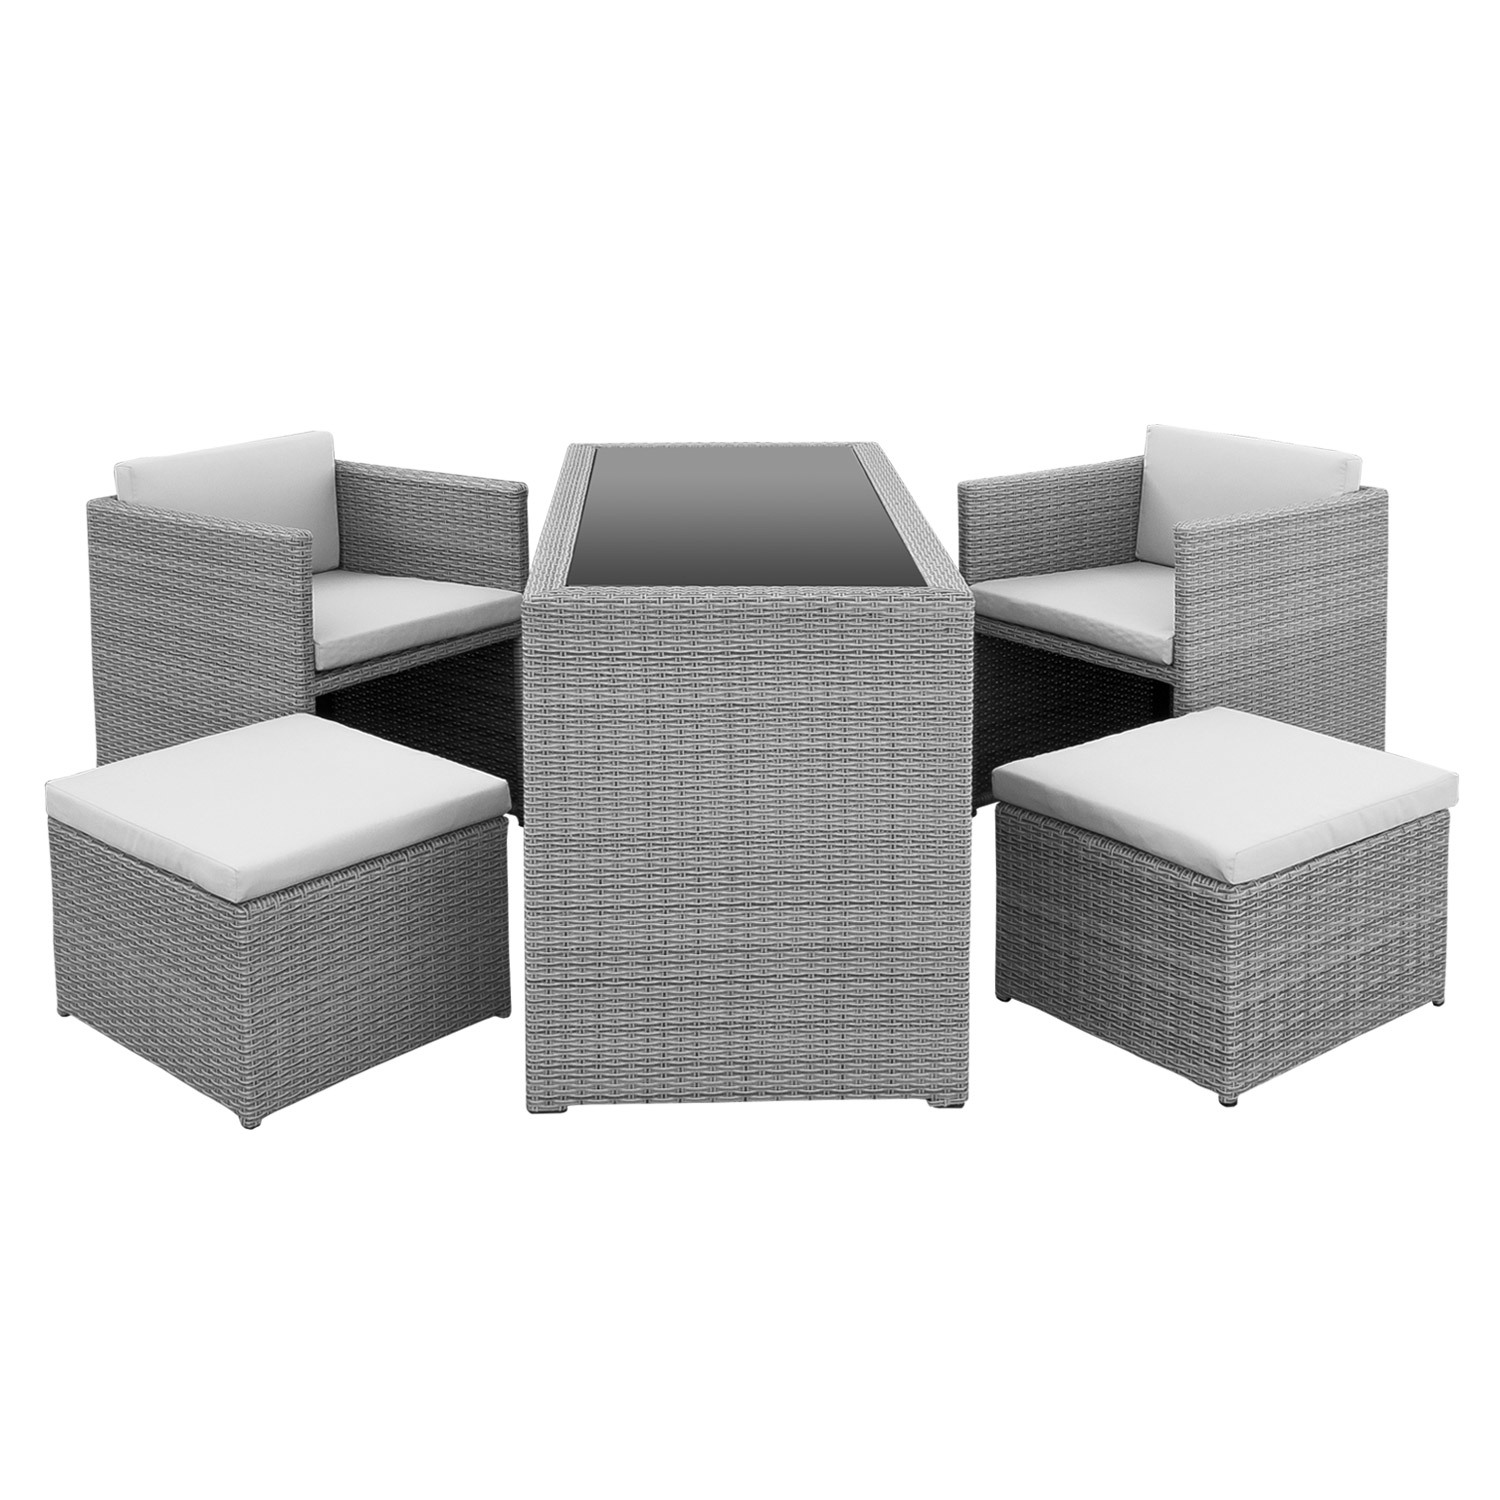 gartenm bel set polyrattan stapelst hle grau. Black Bedroom Furniture Sets. Home Design Ideas